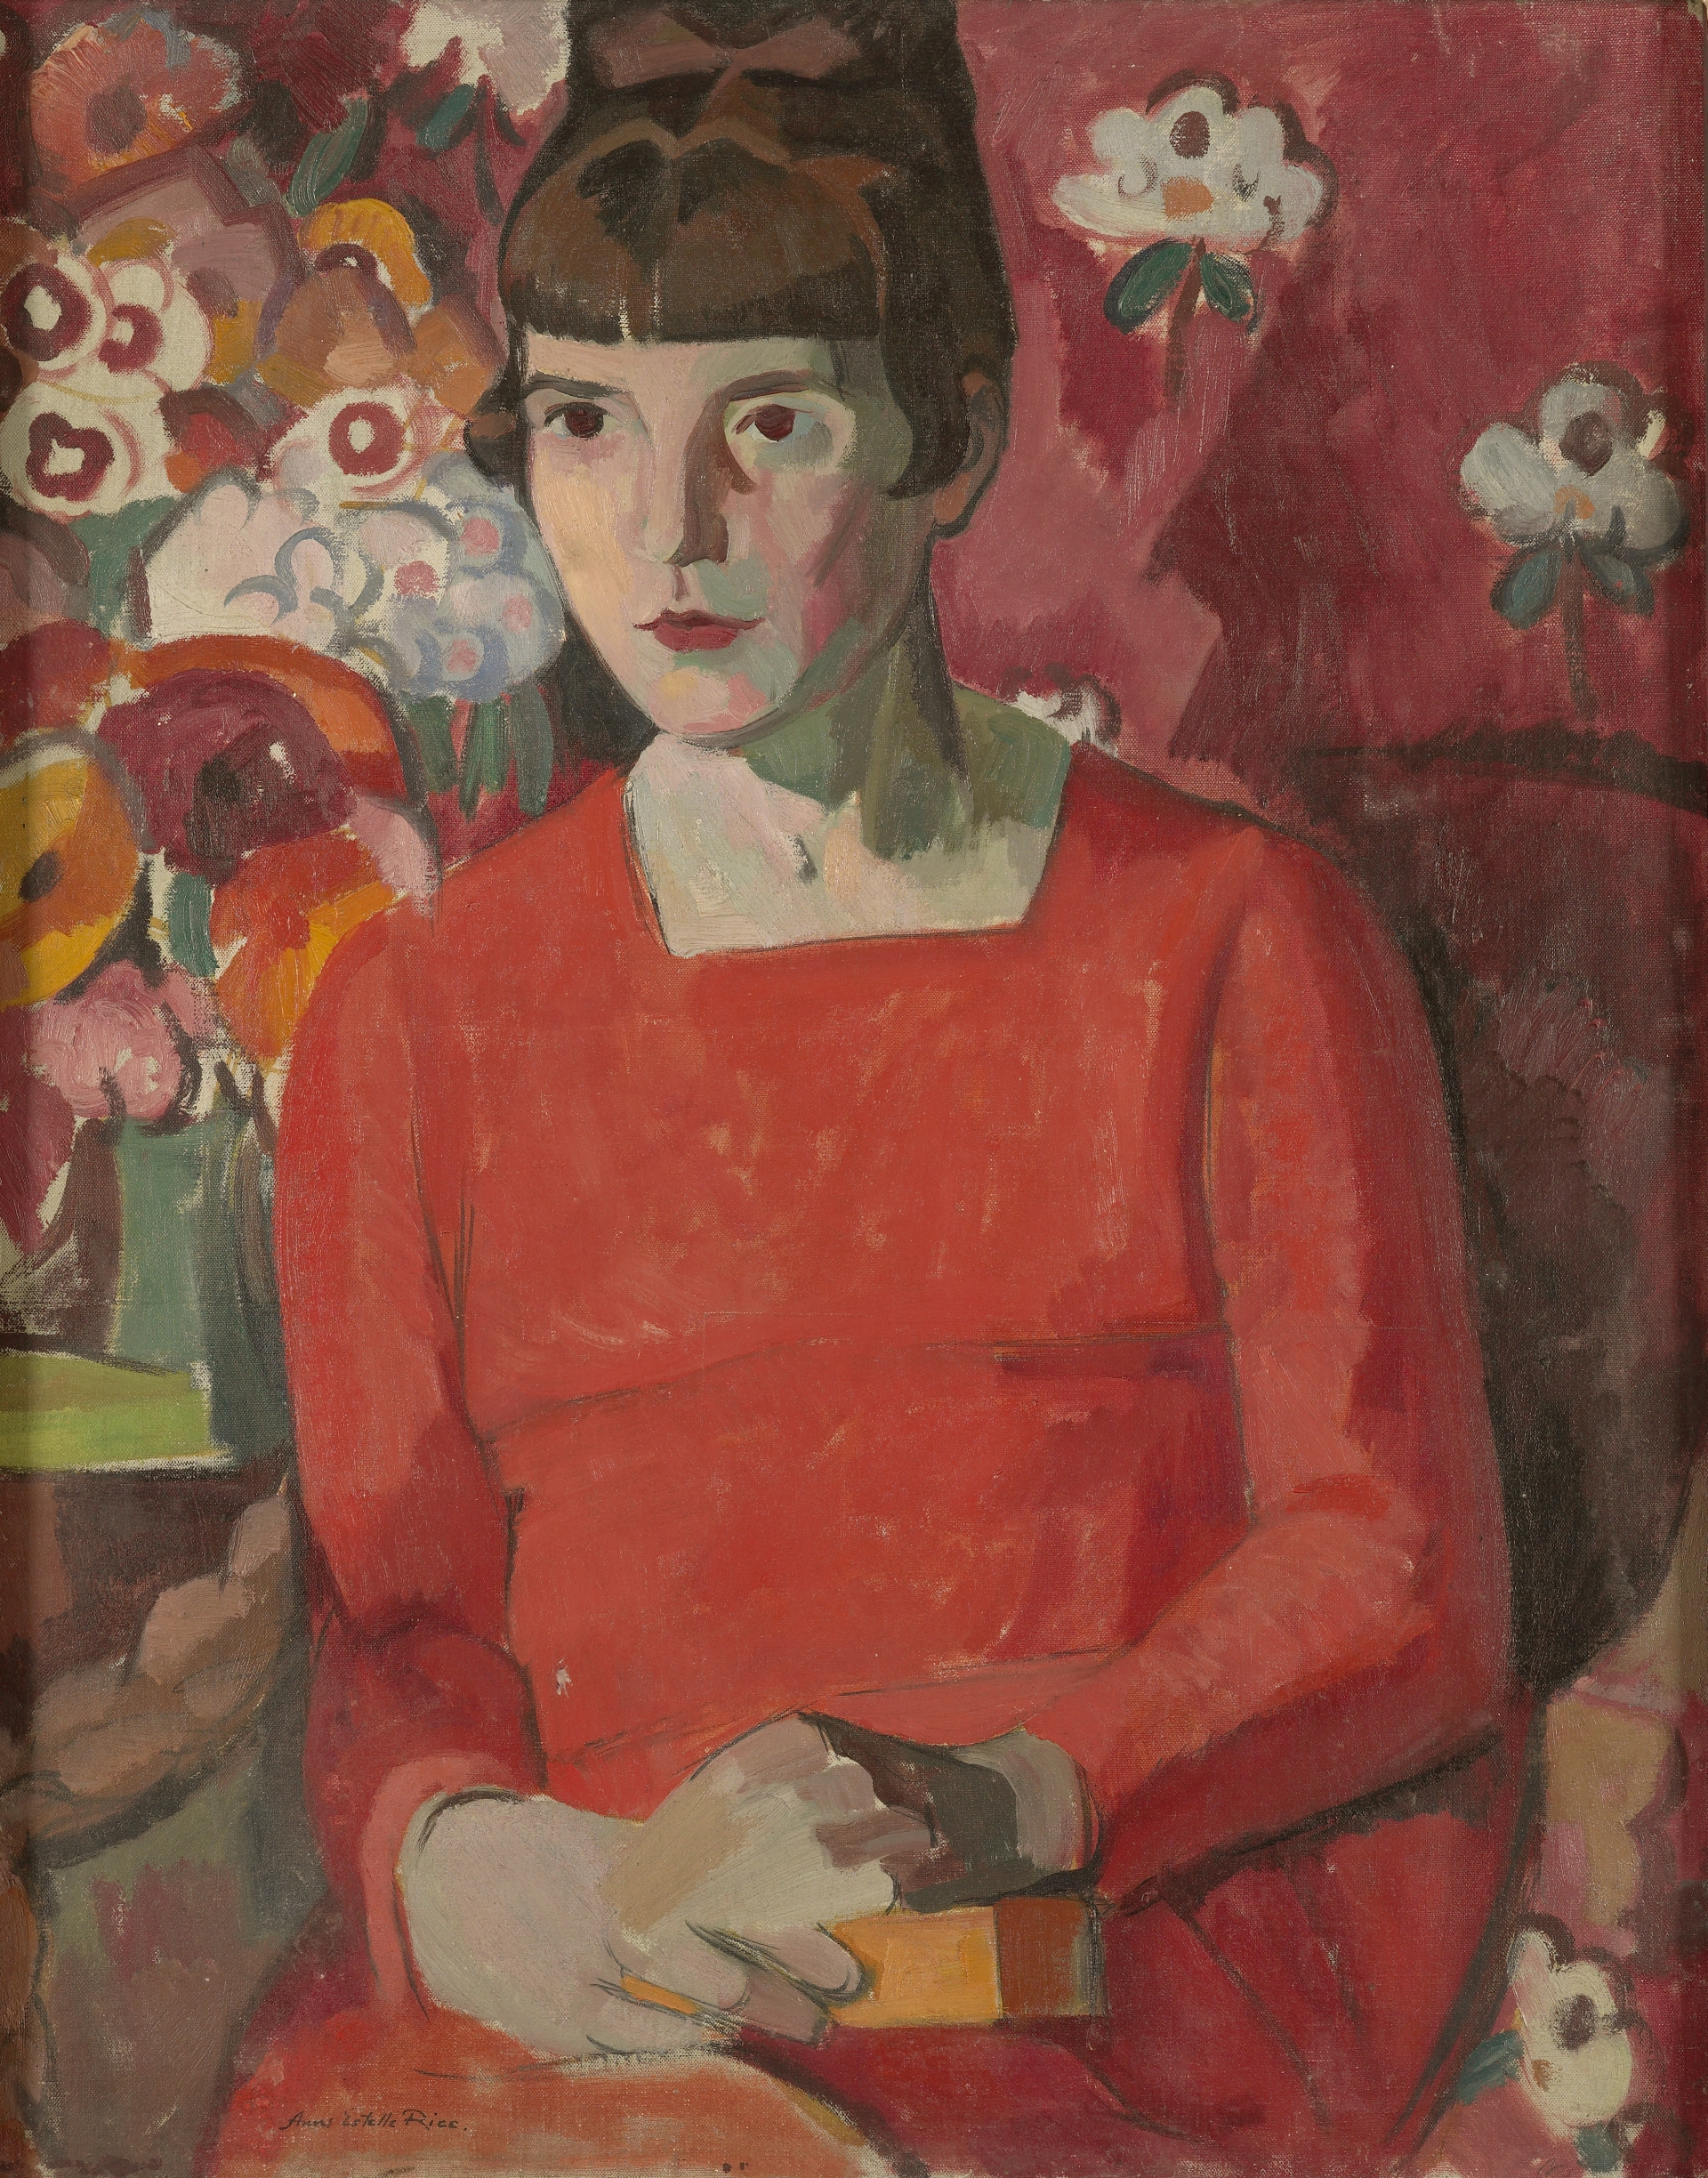 Anne Estelle Rice, Portrait of Katherine Mansfield, 1918, oil on canvas. Purchased 1940 with T G Macarthy Trust funds. Te Papa